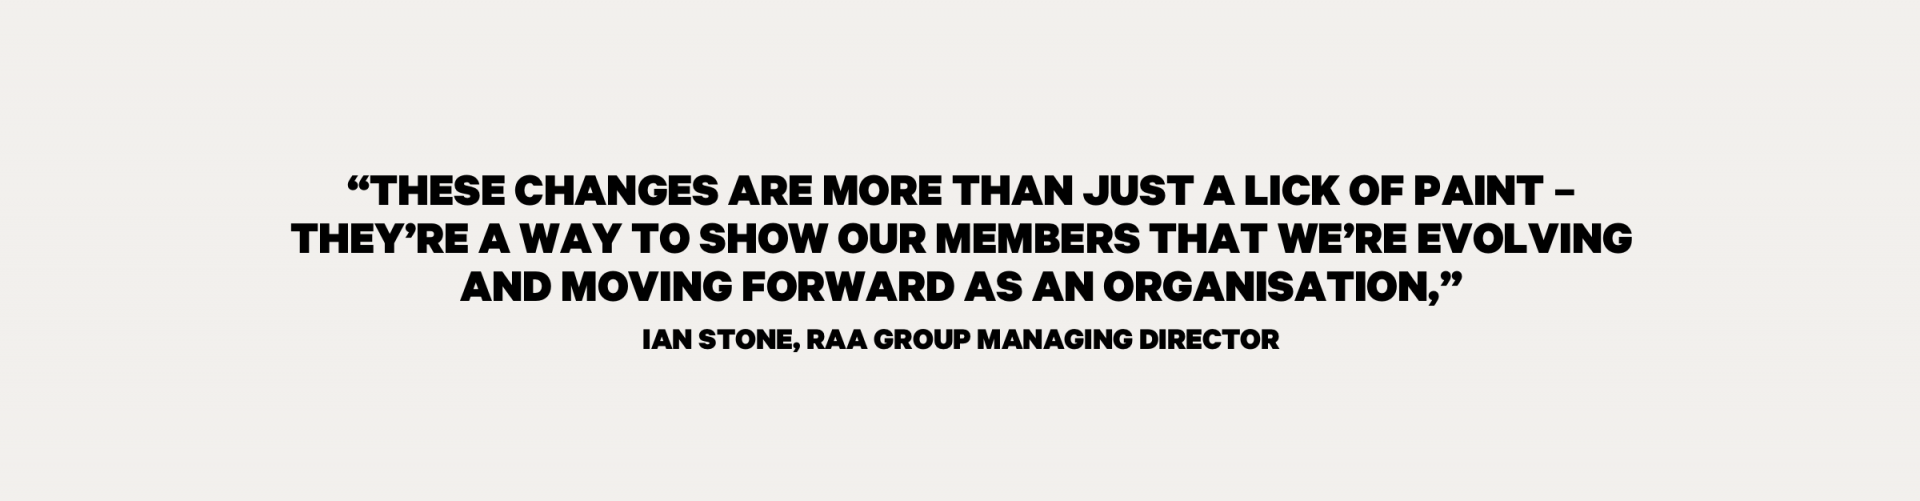 """""""These changes are more than just a lick of paint – they're a way to show our members that we're evolving and moving forward as an organisation."""" Quote from Ian Stone"""